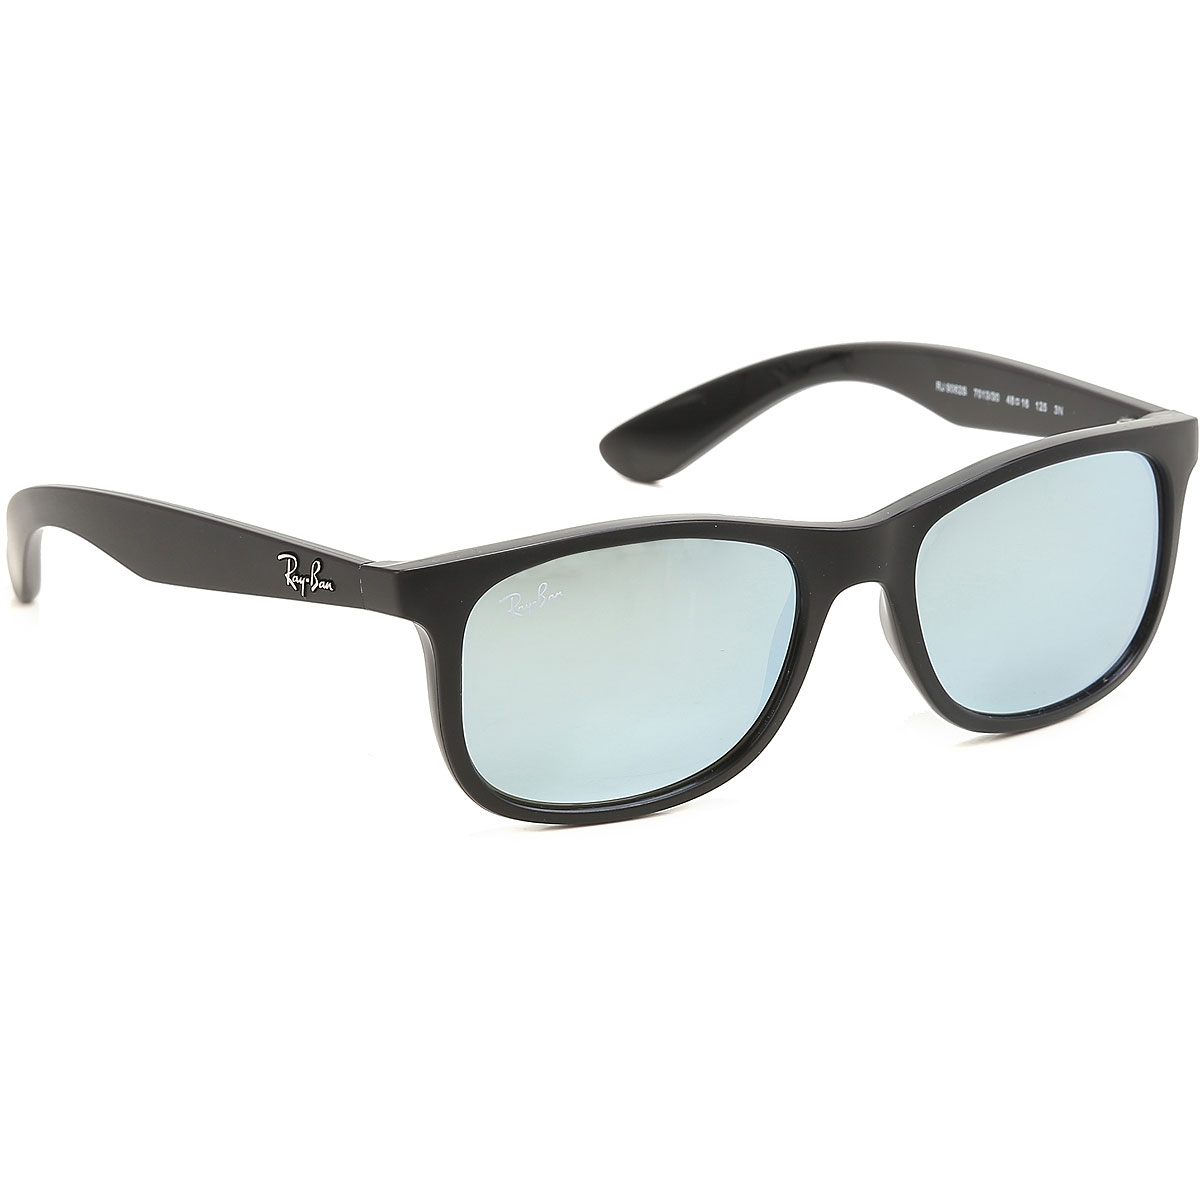 Image of Ray Ban Junior Kids Sunglasses for Boys On Sale, Matte Black, 2017